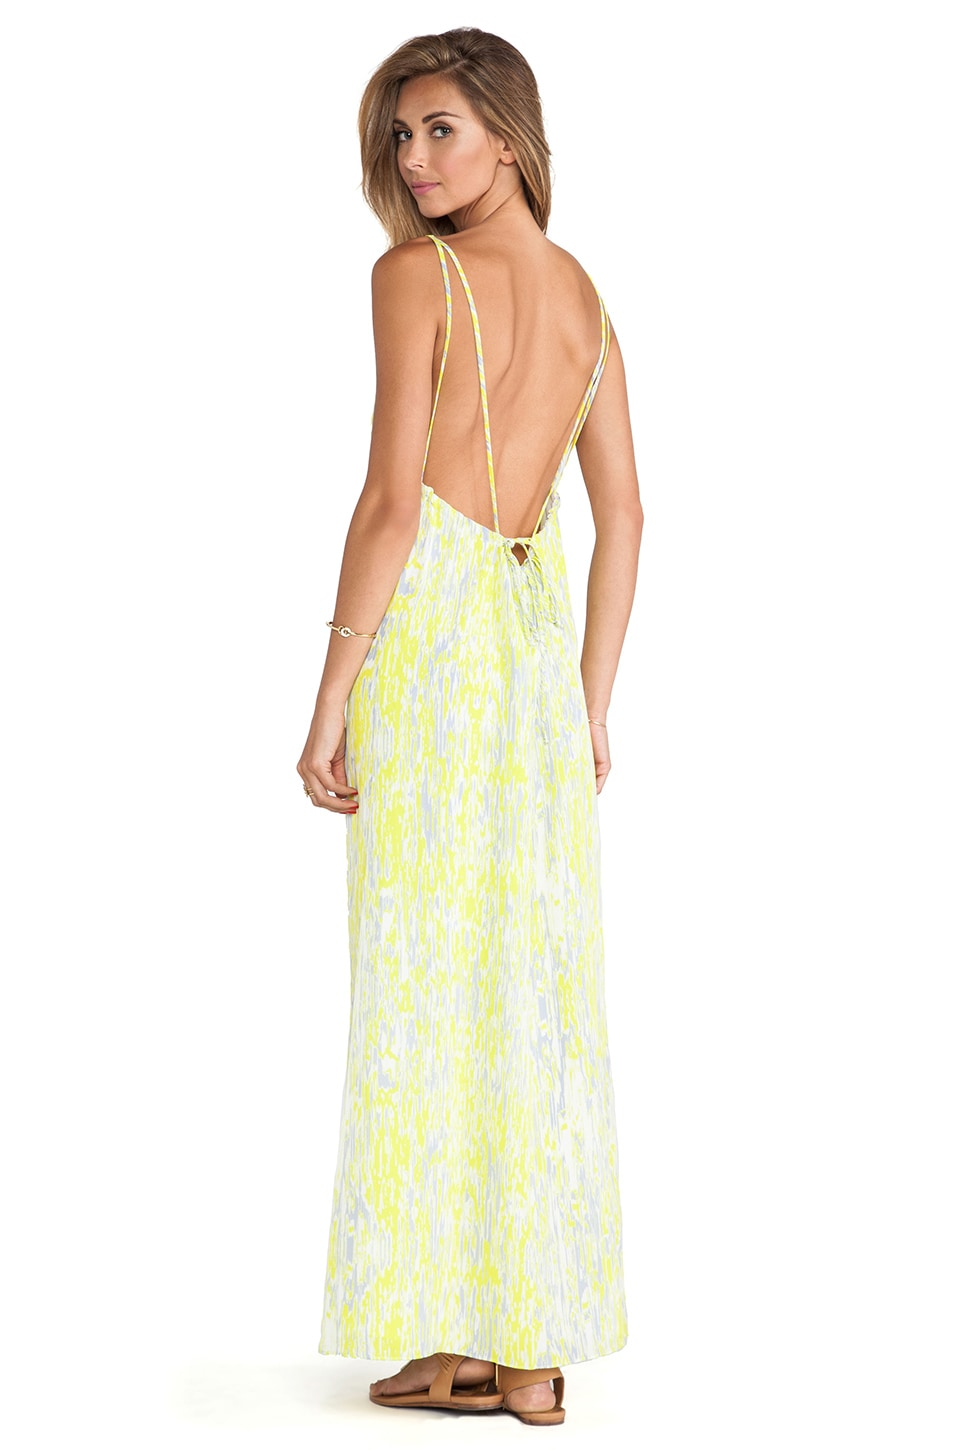 Lovers + Friends Golden Light Maxi Dress in Abstract Yellow